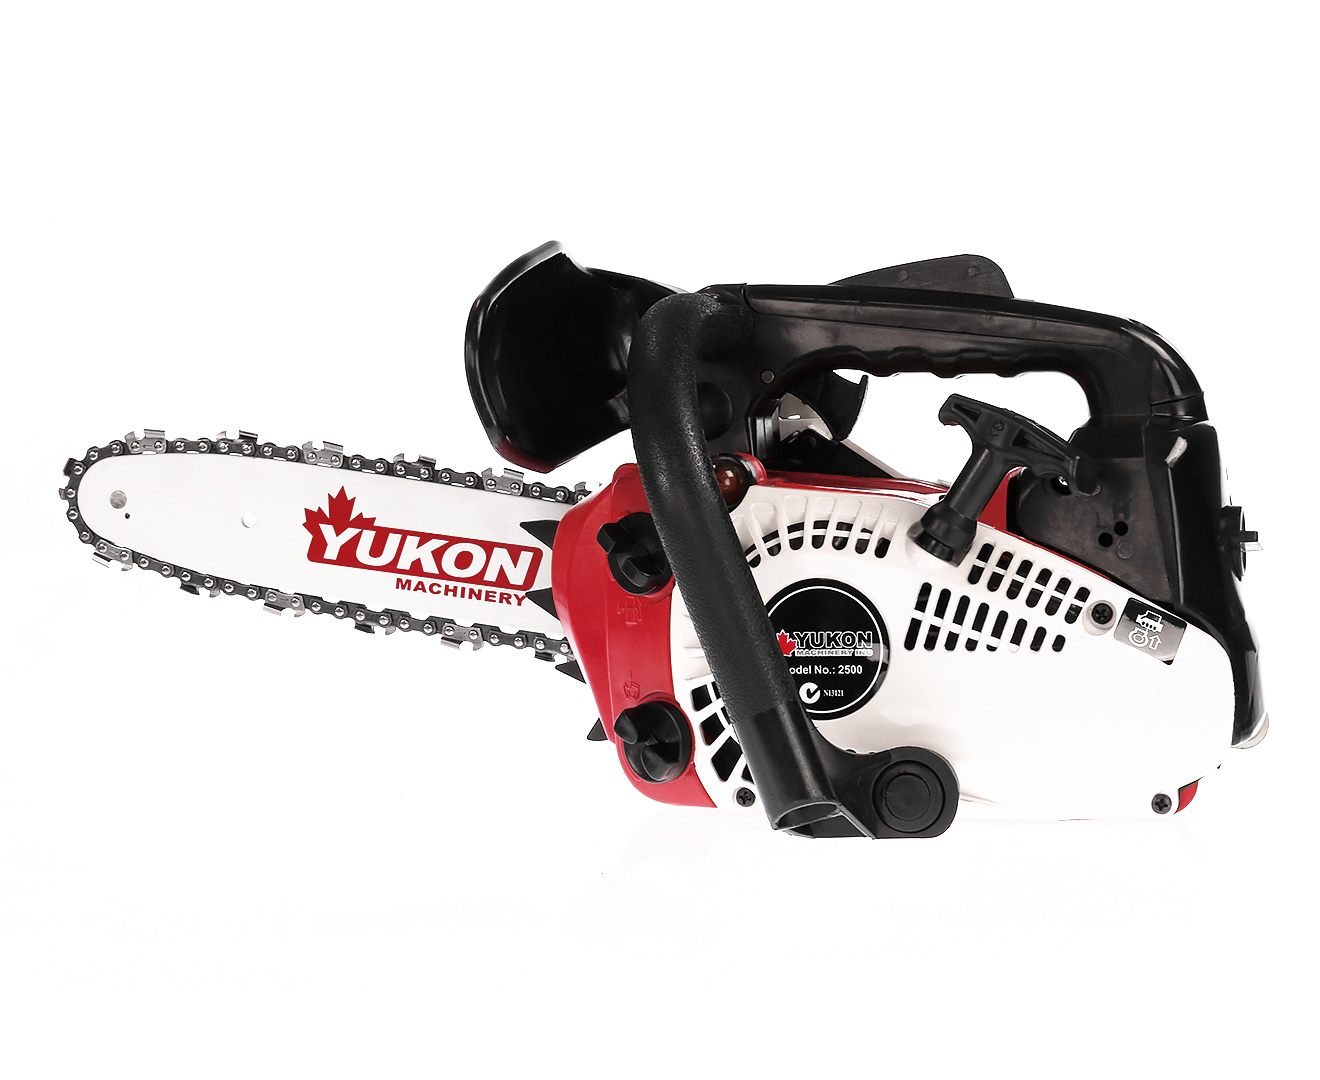 Yukon 25cc 10in Arborist Chainsaw